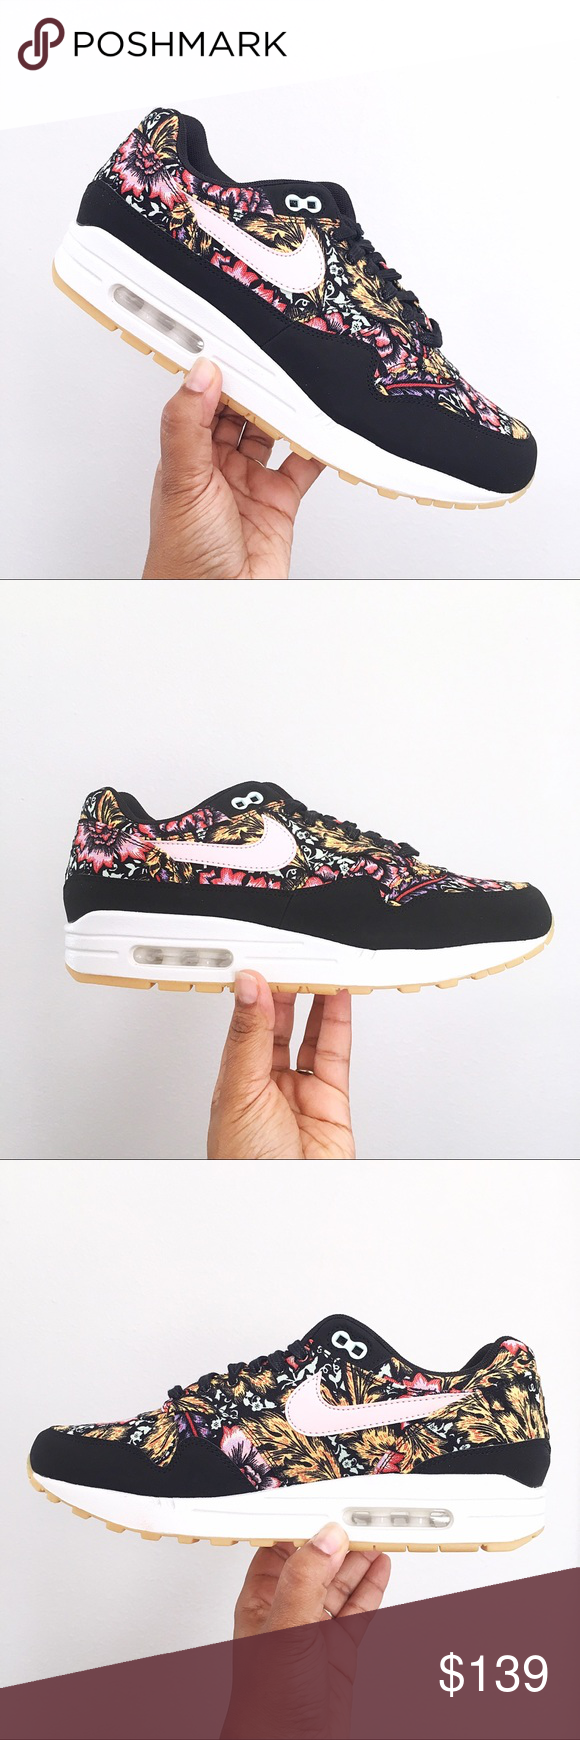 sports shoes 8f5ea d7450 Nike Air Max 1 Qs Floral Print Pink Women s Shoes Brand New In Box no lid